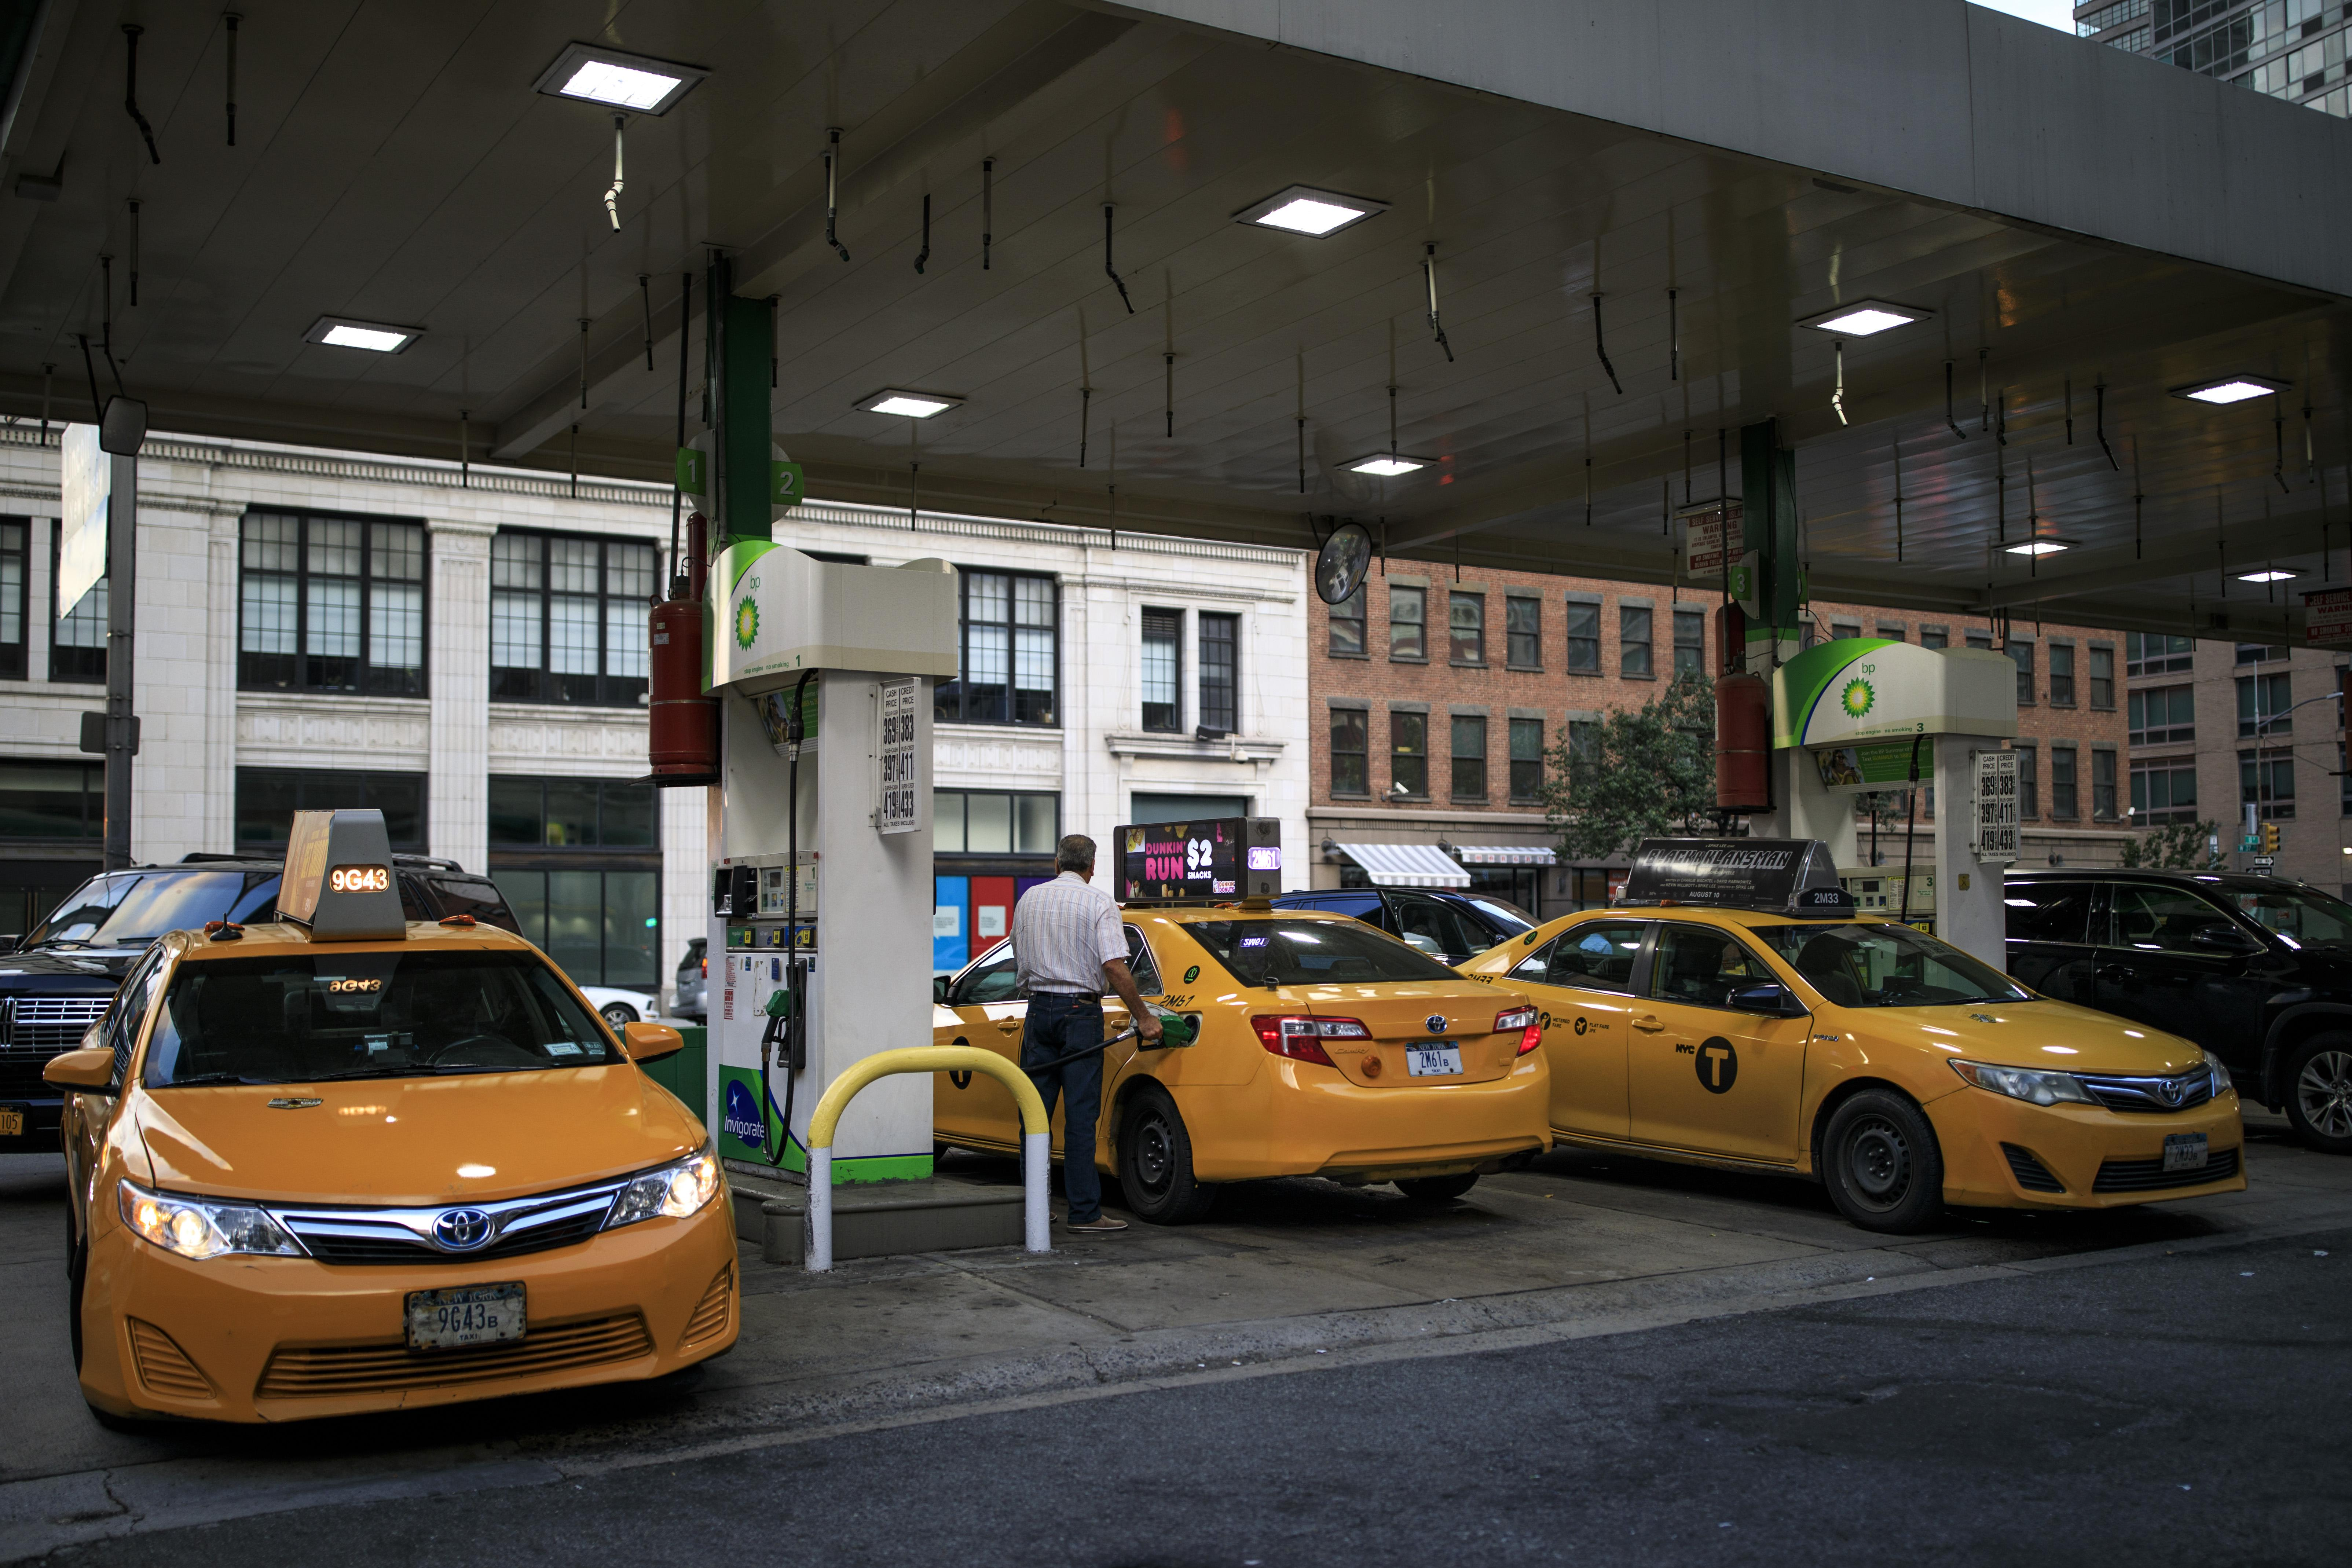 NEW YORK, NY - AUGUST 8: Taxi cabs fill up at a BP Gas station on the West Side of Manhattan, August 8, 2018 in New York City. On Wednesday, New York City became the first American city to halt new vehicles for ride-hail services. The legislation passed by the New York City Council will cap the number of for-hire vehicles for one year while the city studies the industry. The move marks a setback for Uber in its largest U.S. market. (Photo by Drew Angerer/Getty Images)